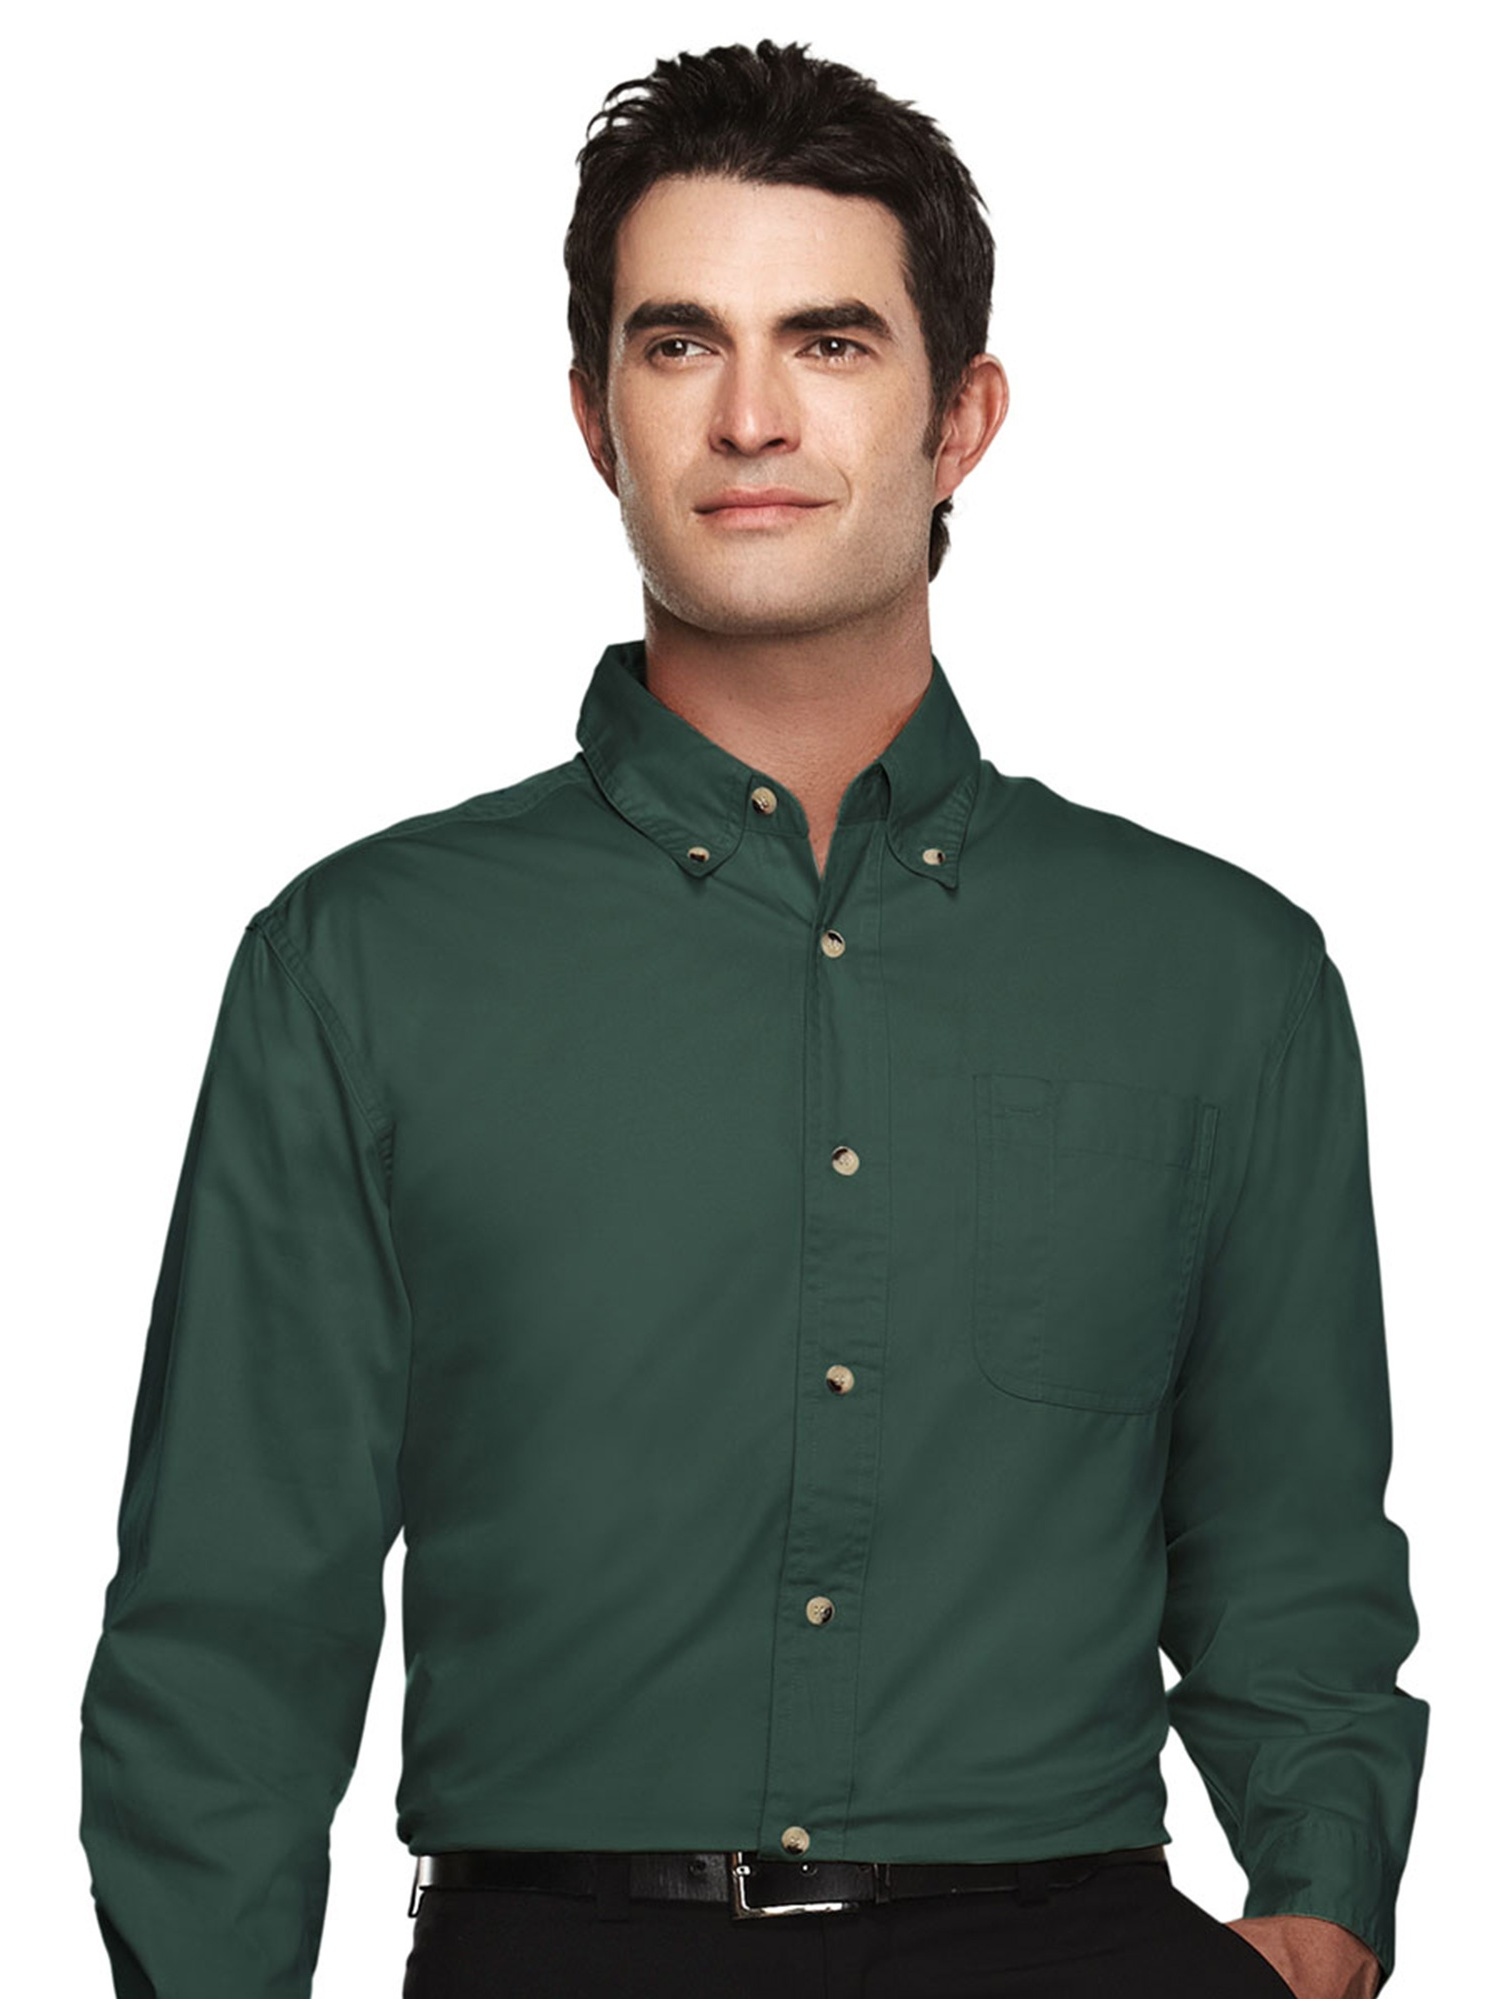 Tri-Mountain Men's Big And Tall Easy Care Twill Dress Shirt